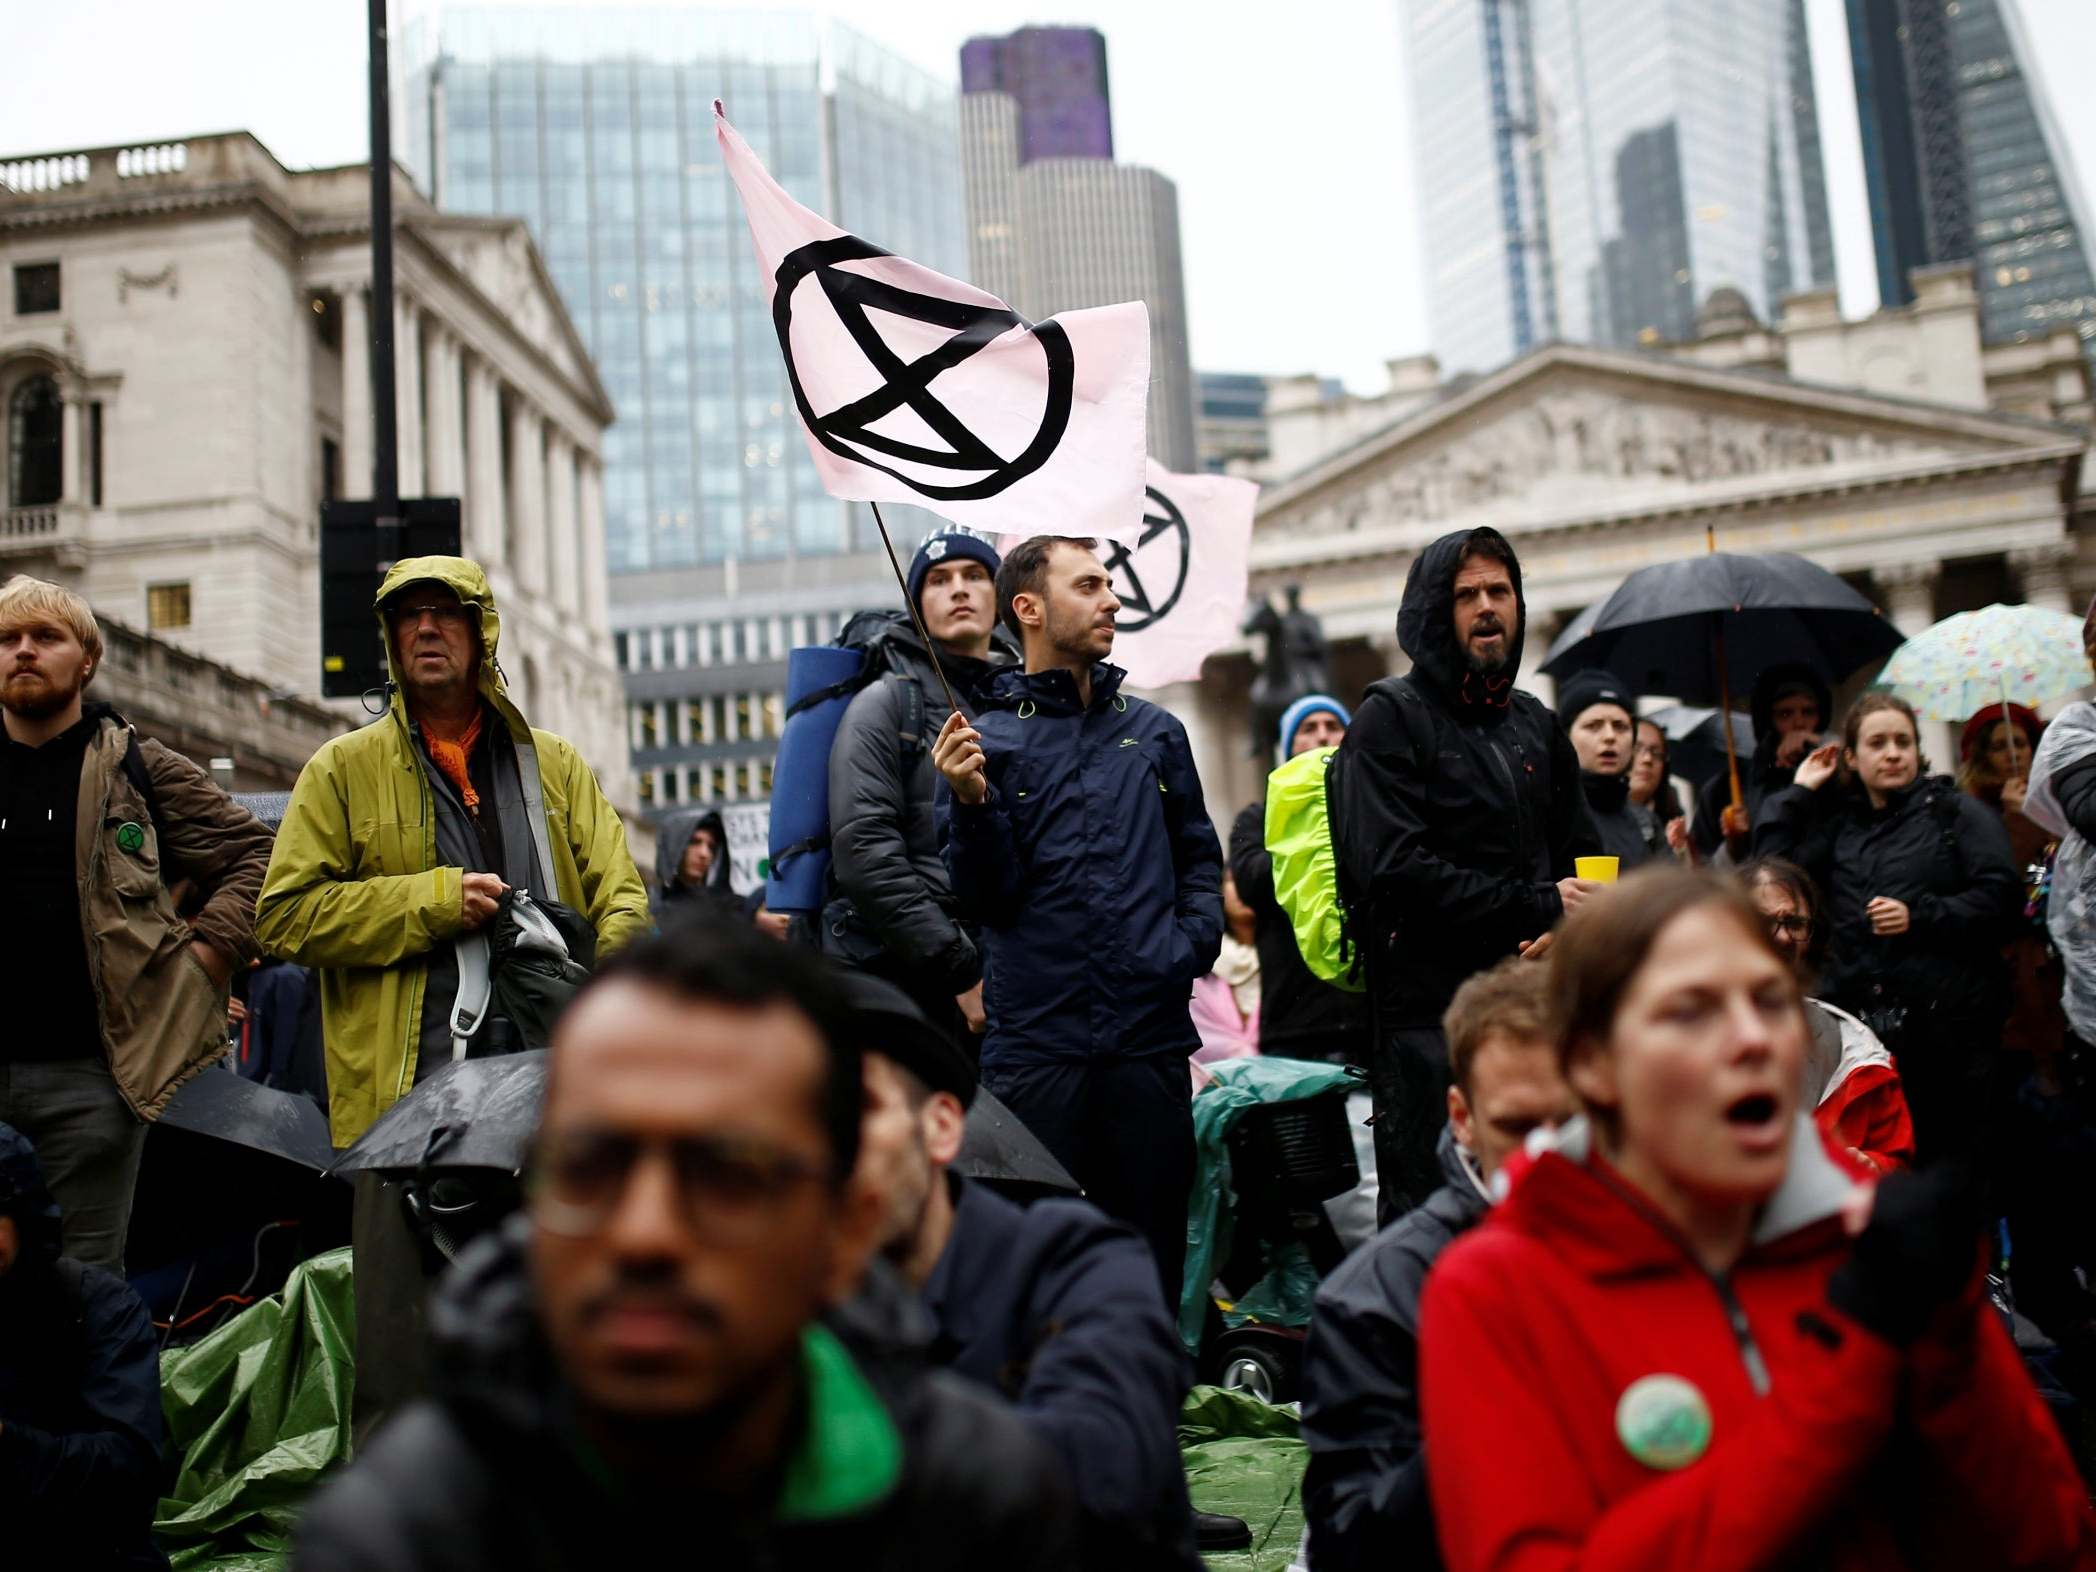 Extinction Rebellion protests – live: Activists target city workers in bid to cause 'maximum disruption' to London's financial district